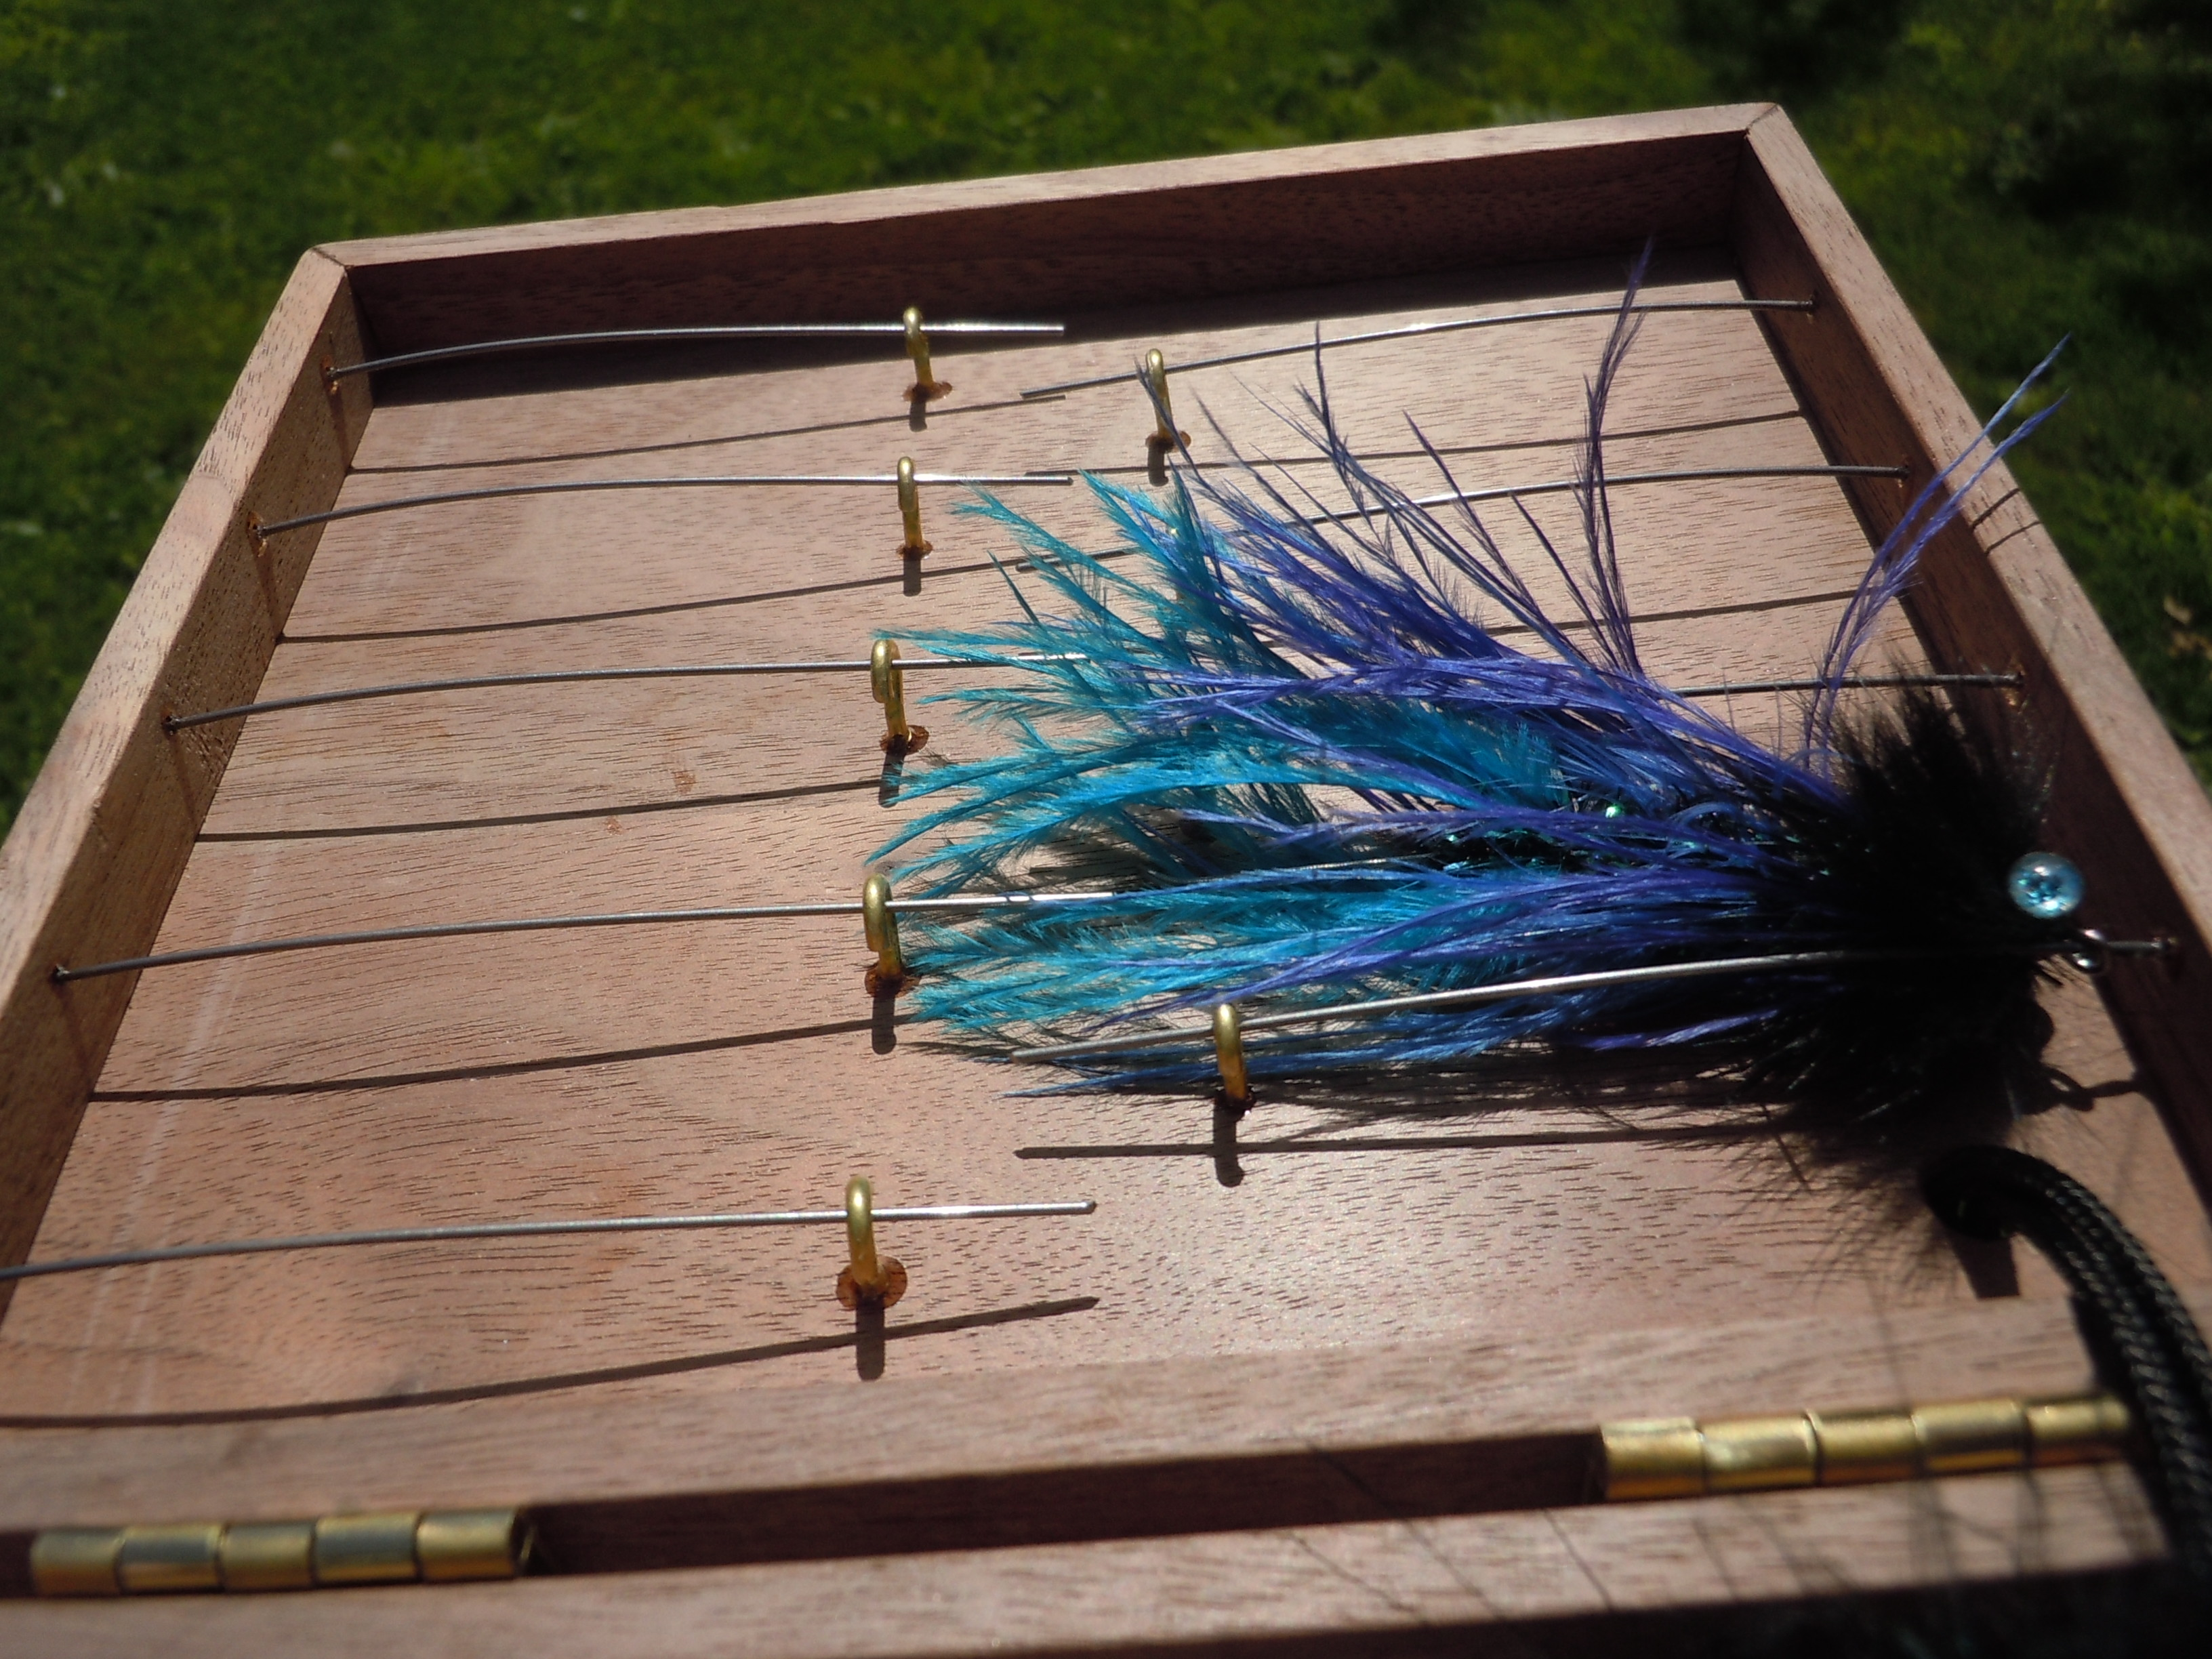 Click image for larger version  Name:2019 tubefly boxes (3).JPG Views:13 Size:1.56 MB ID:357902